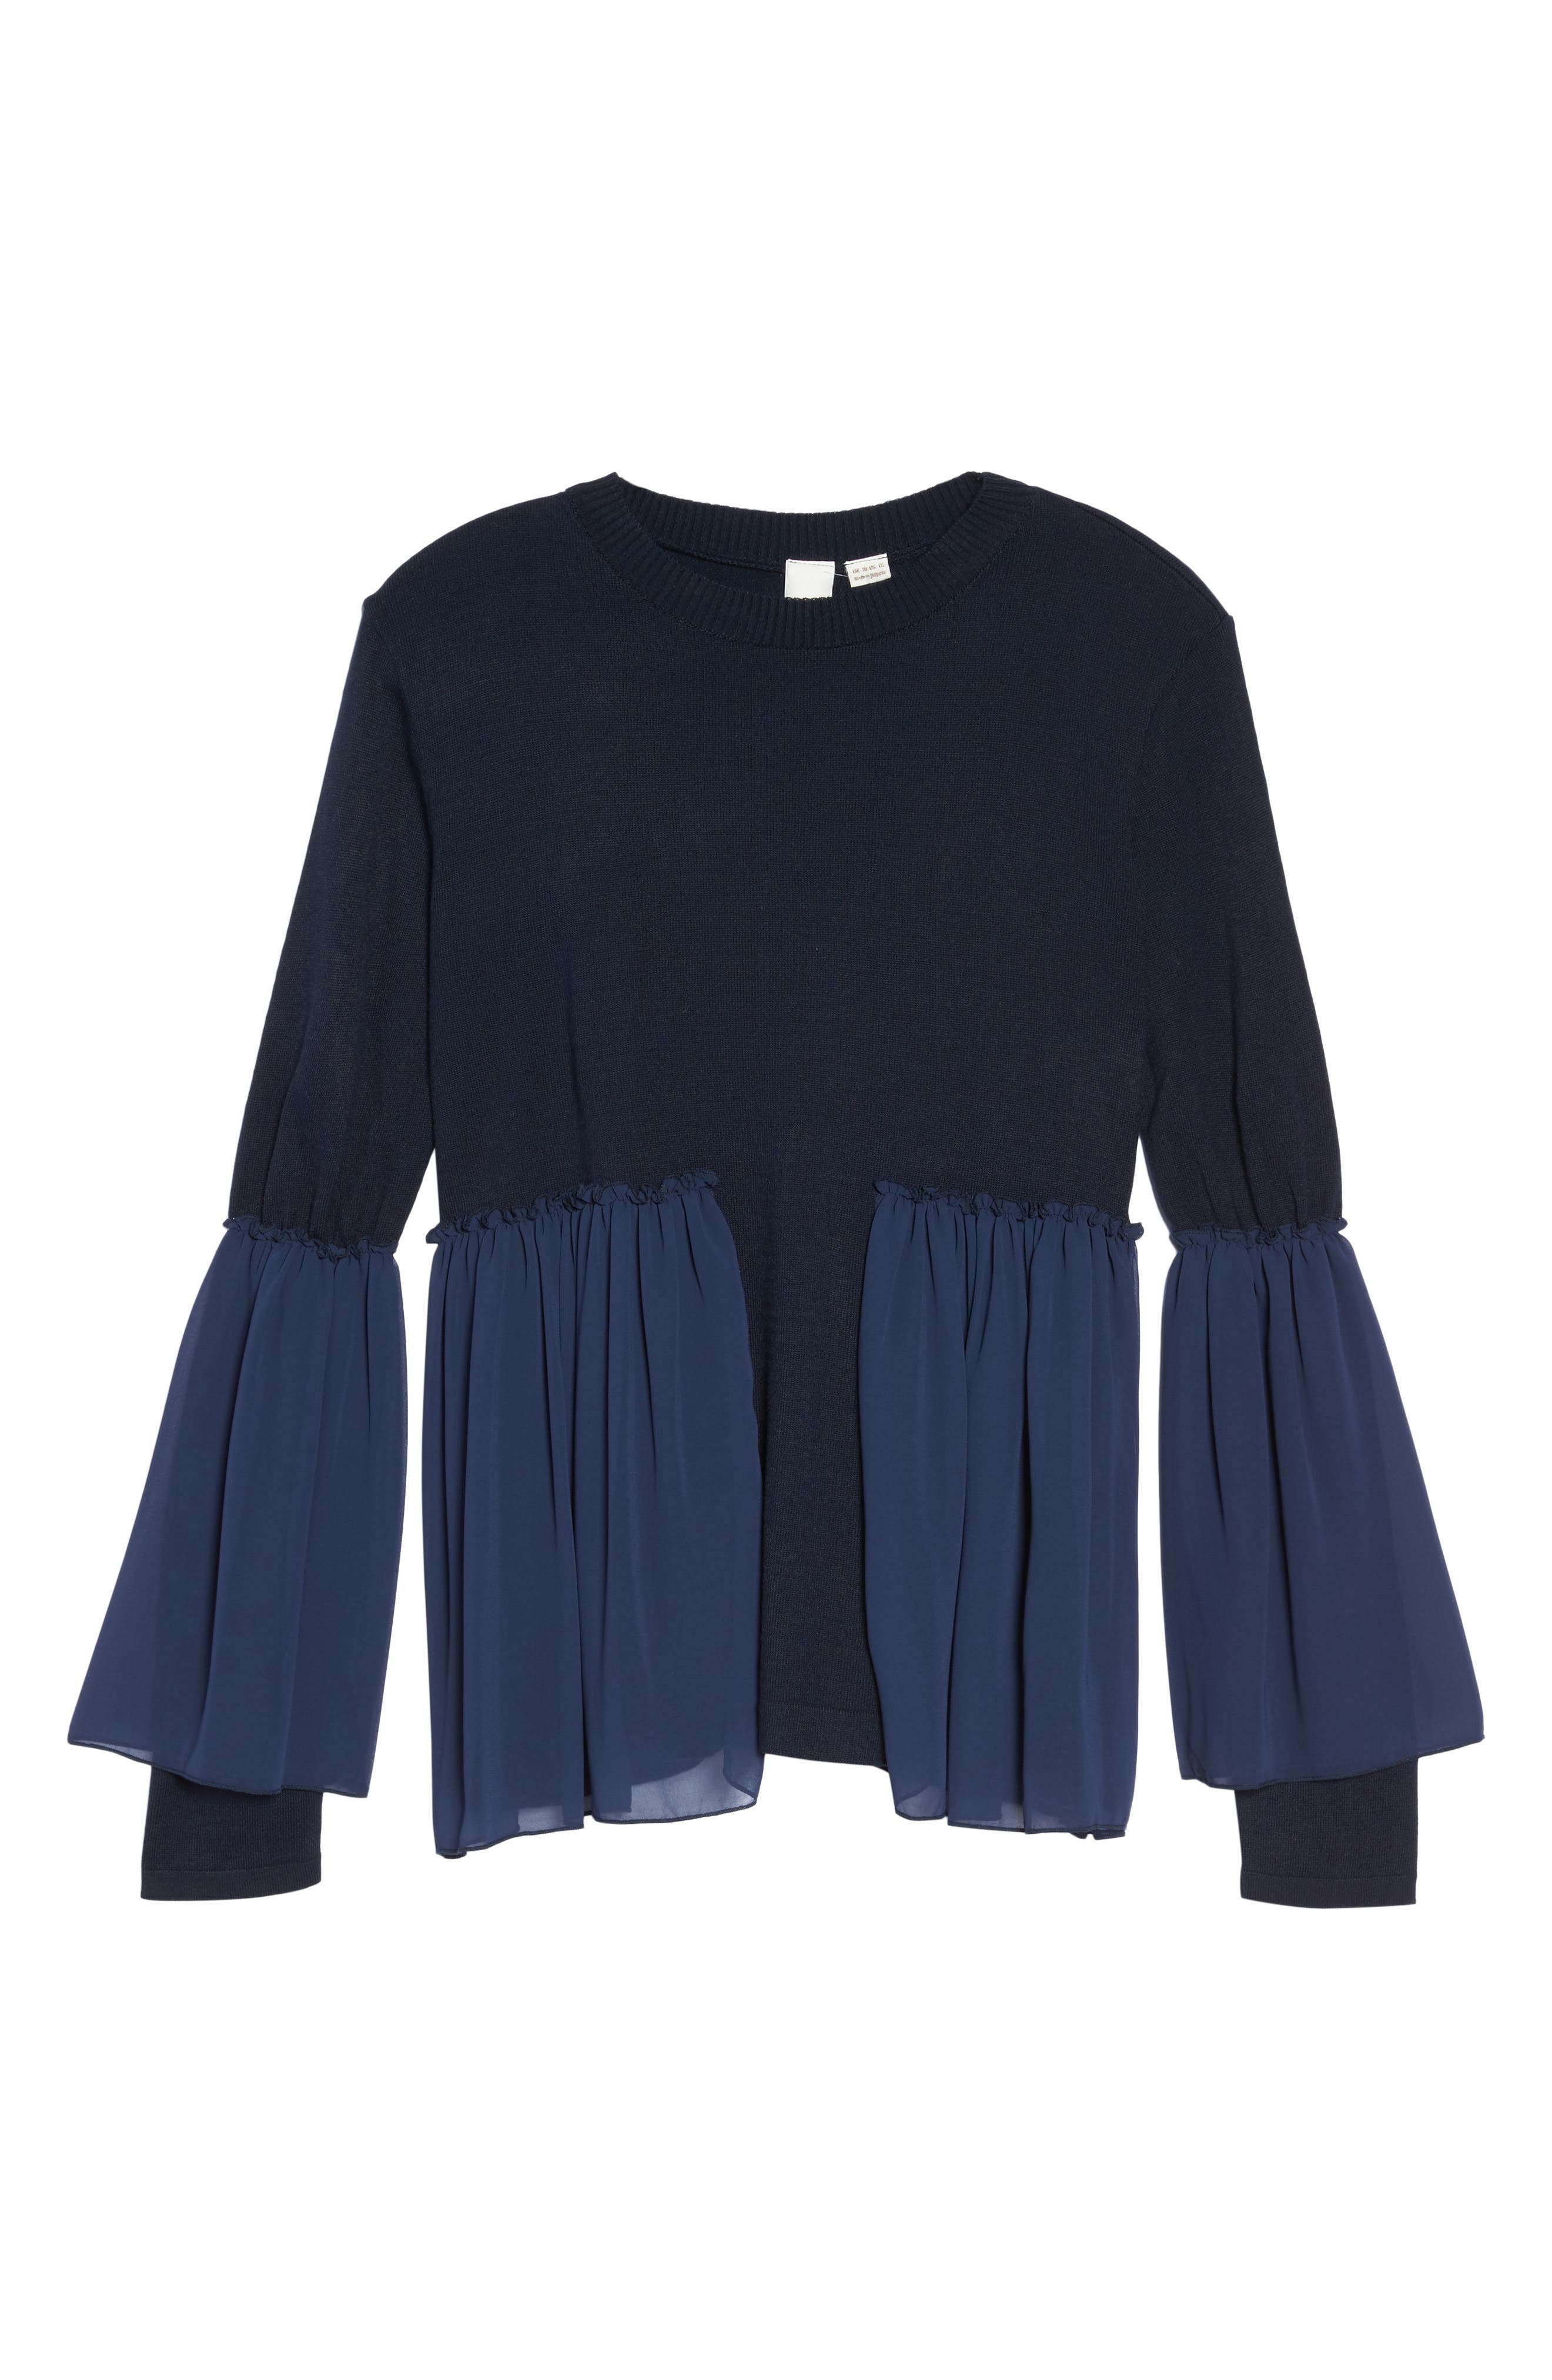 Smocked Chiffon Contrast Sweater,                             Alternate thumbnail 6, color,                             Navy